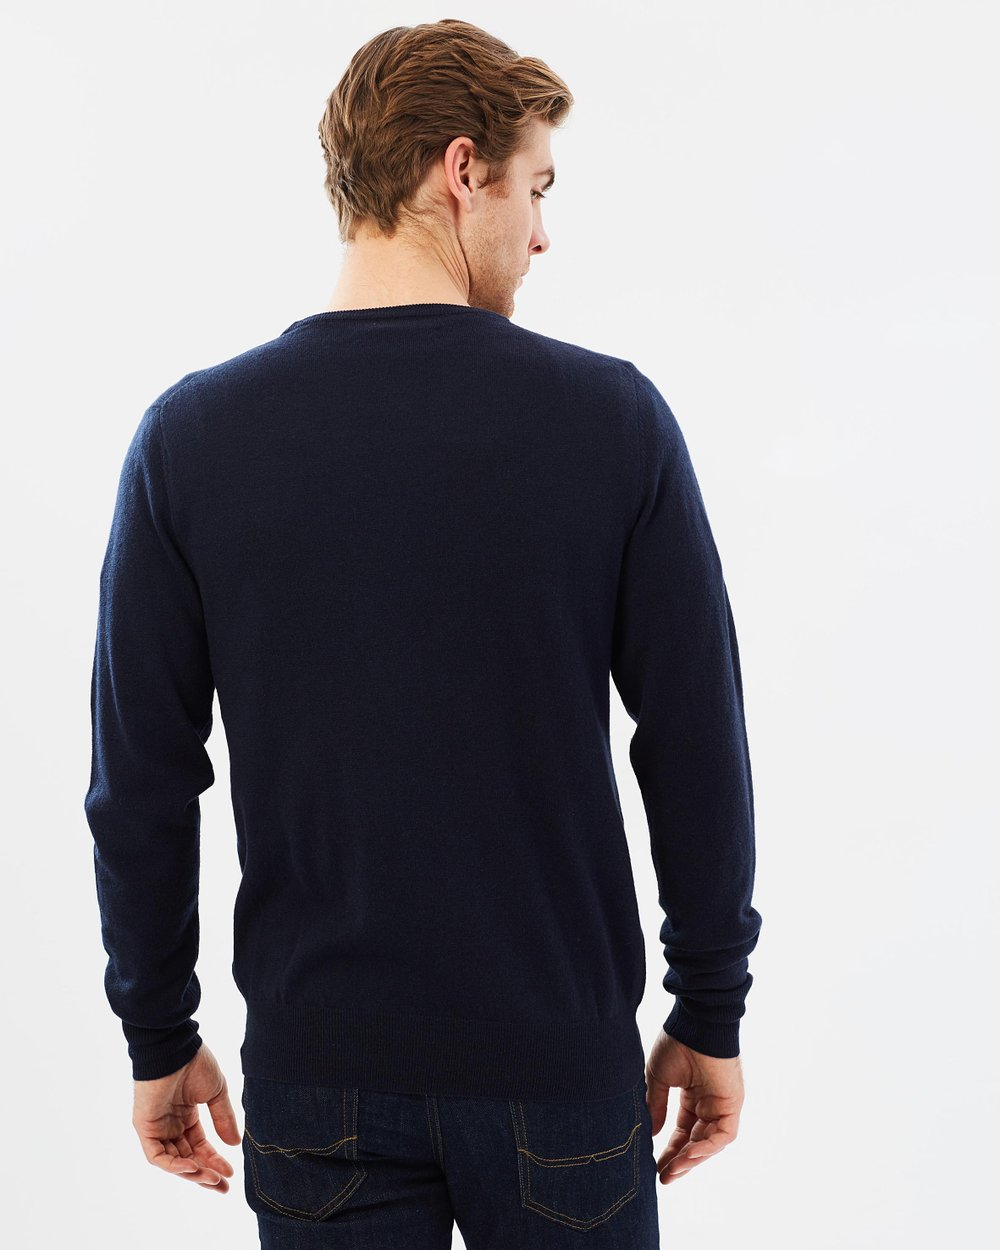 56ad40b66ad1 Howe Sweater by R.M. Williams Online